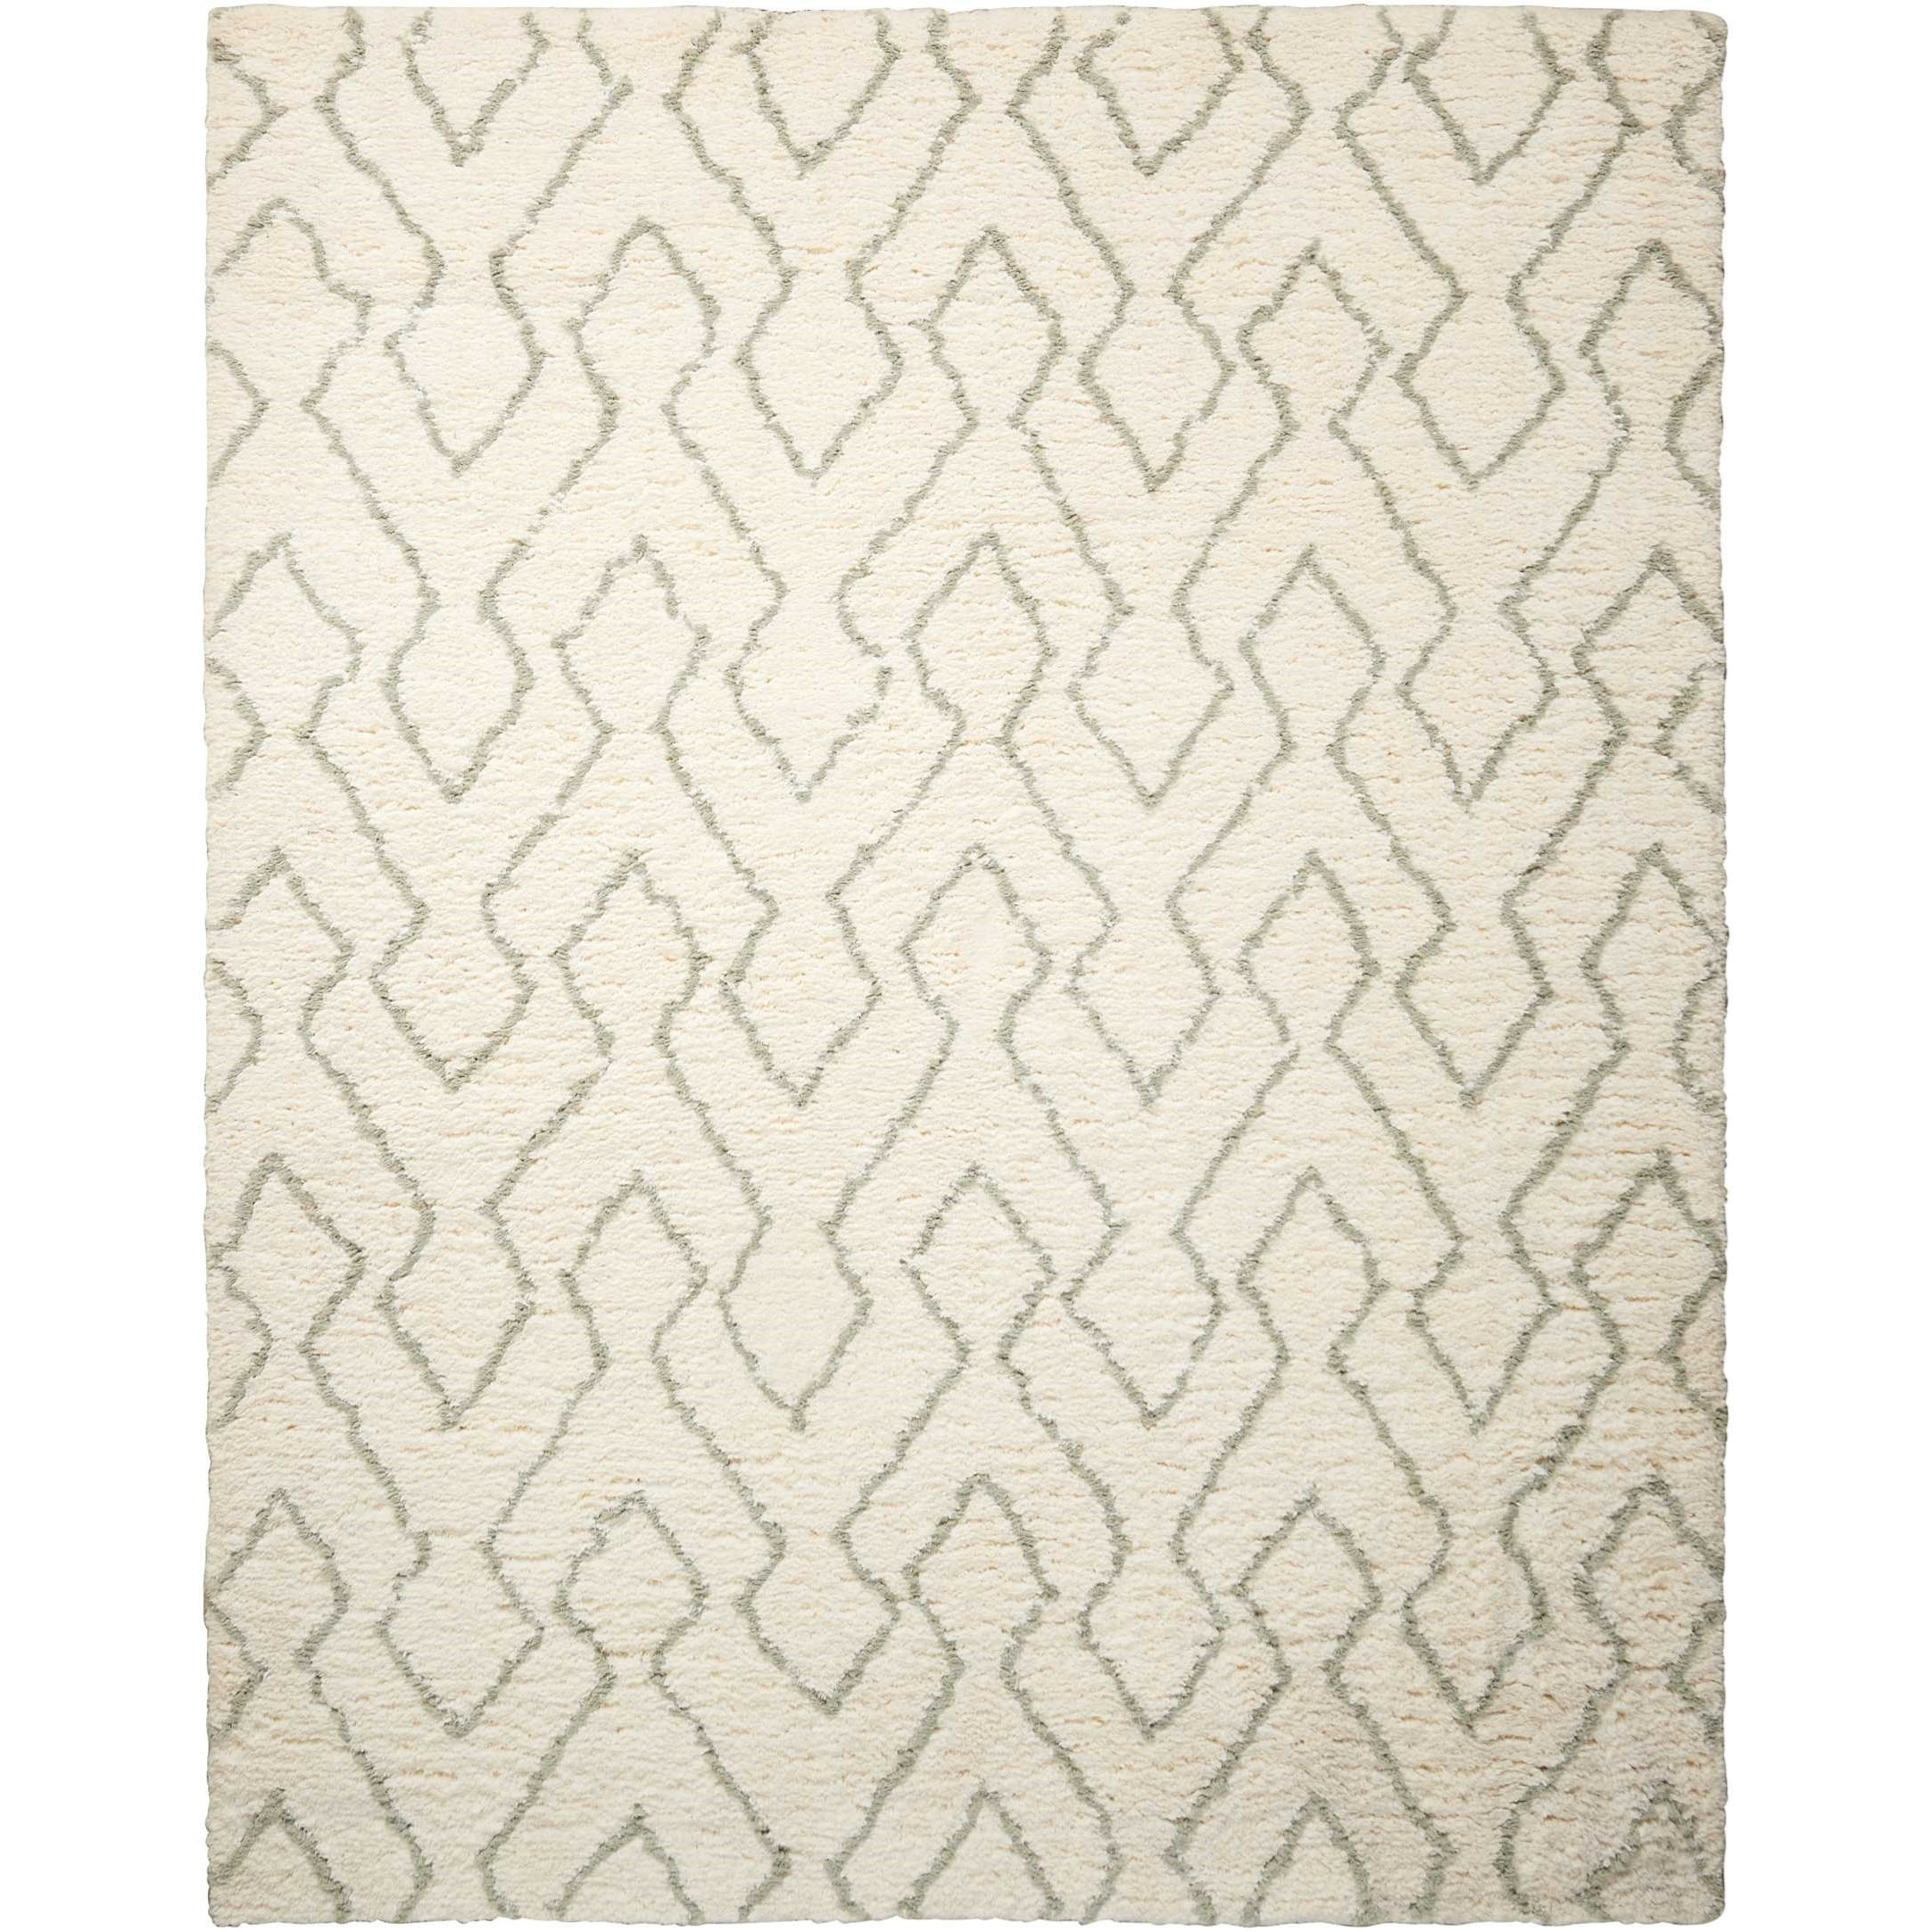 "Galway 7'6"" x 9'6"" Ivory/Sage Rectangle Rug by Nourison at Home Collections Furniture"